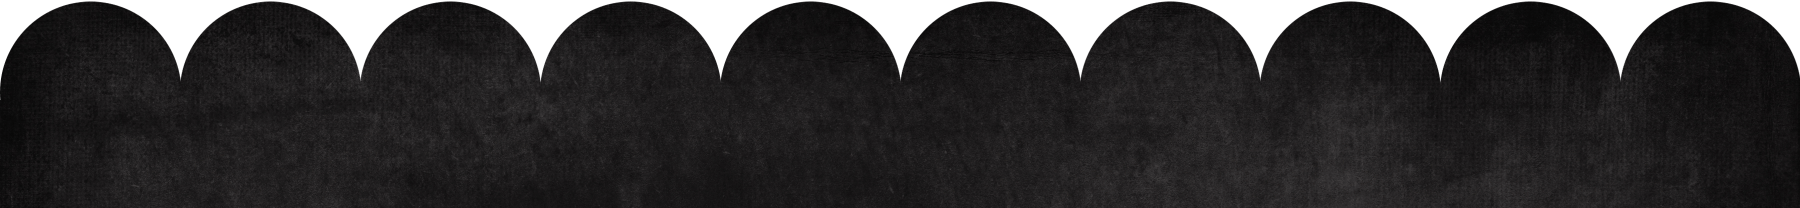 Chalkboard borders png. Scalloped border templates in